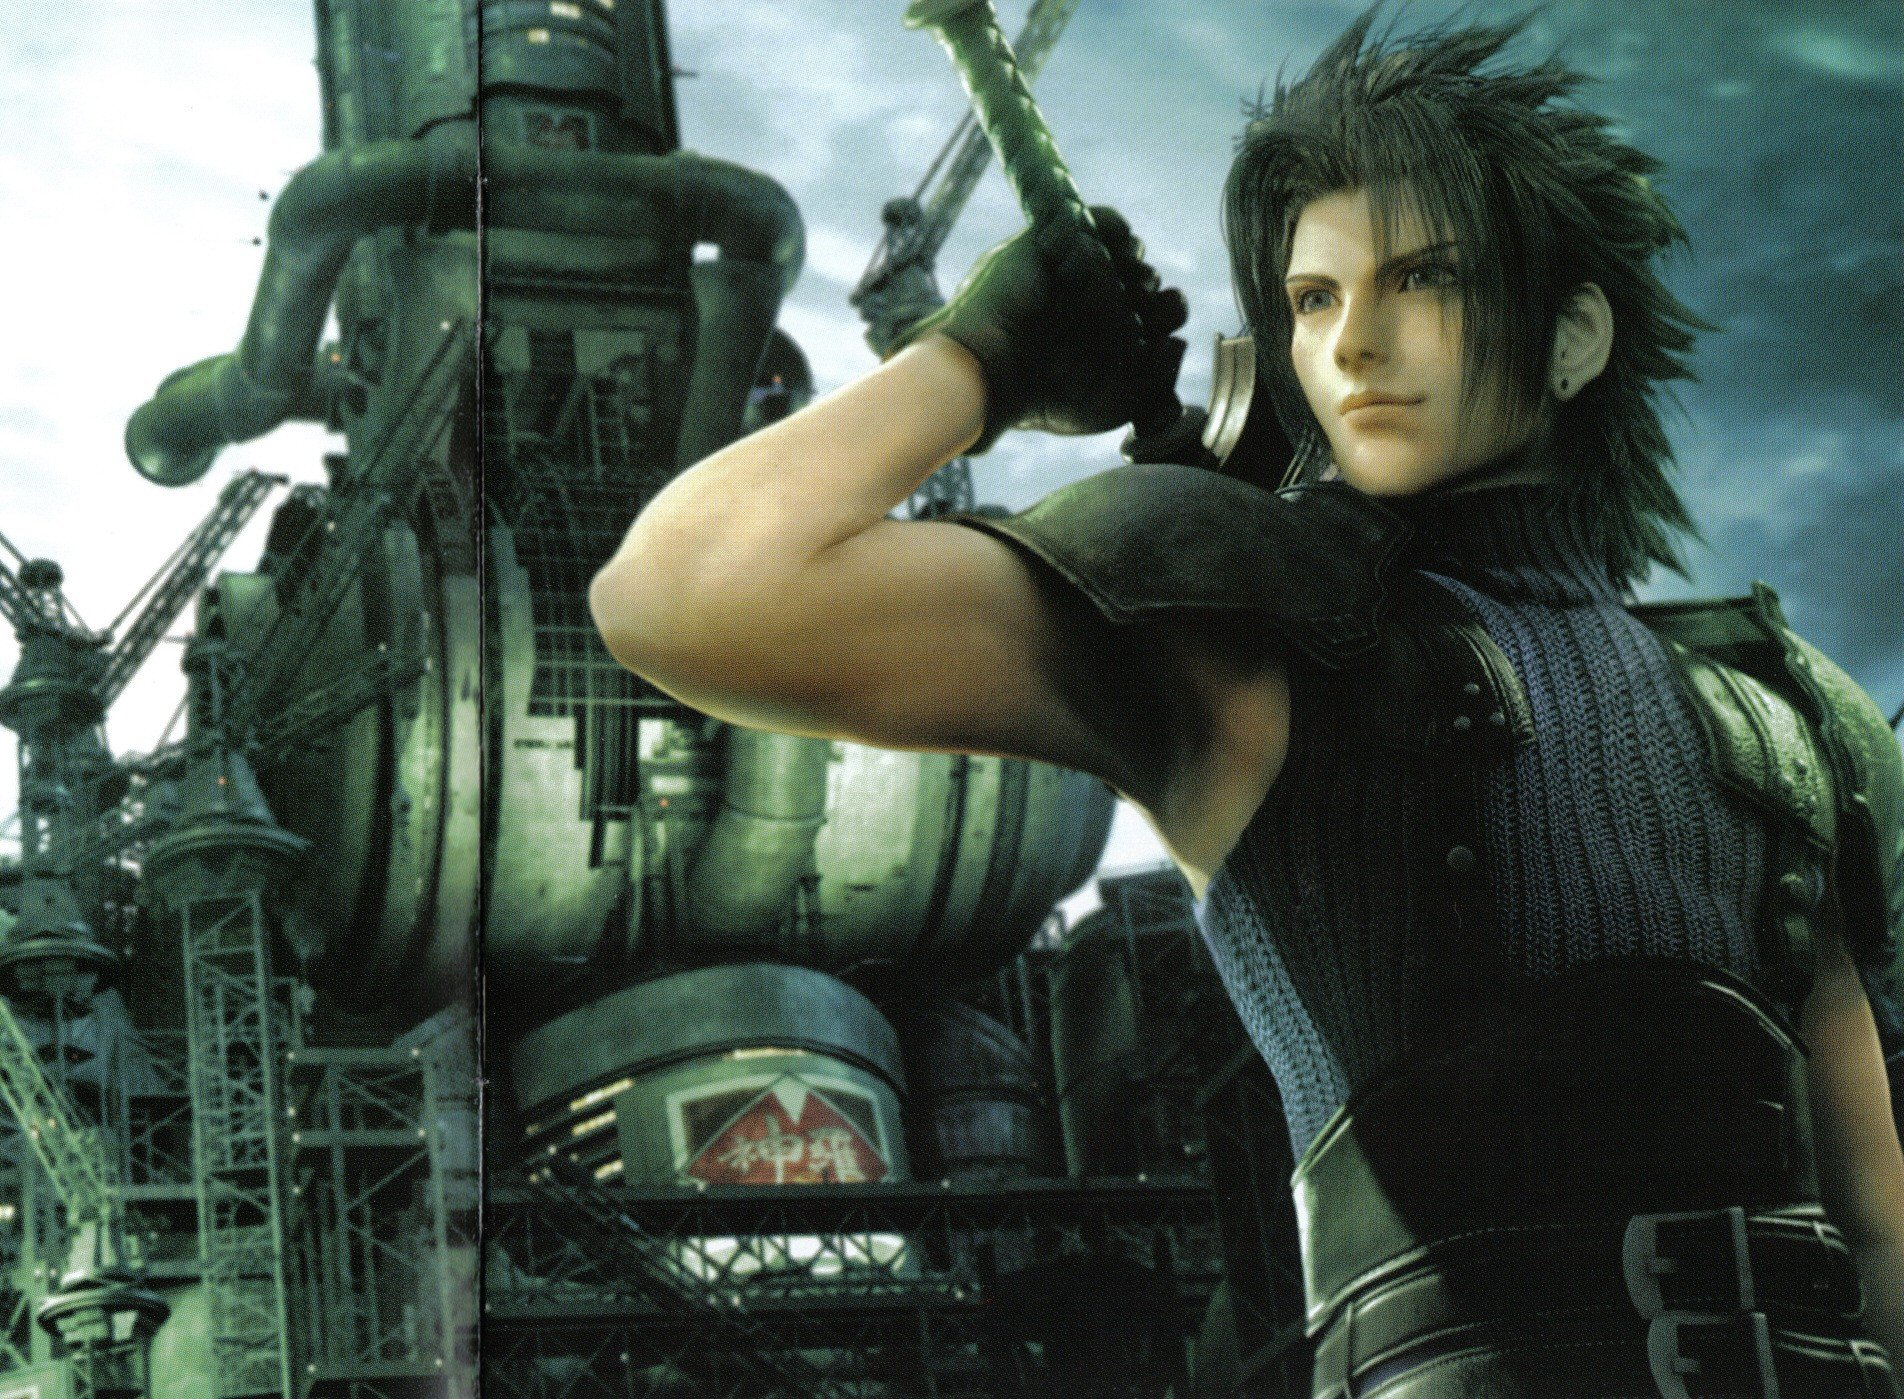 Zack Fair Wallpaper   Zerochan Anime Image Board 1904x1399